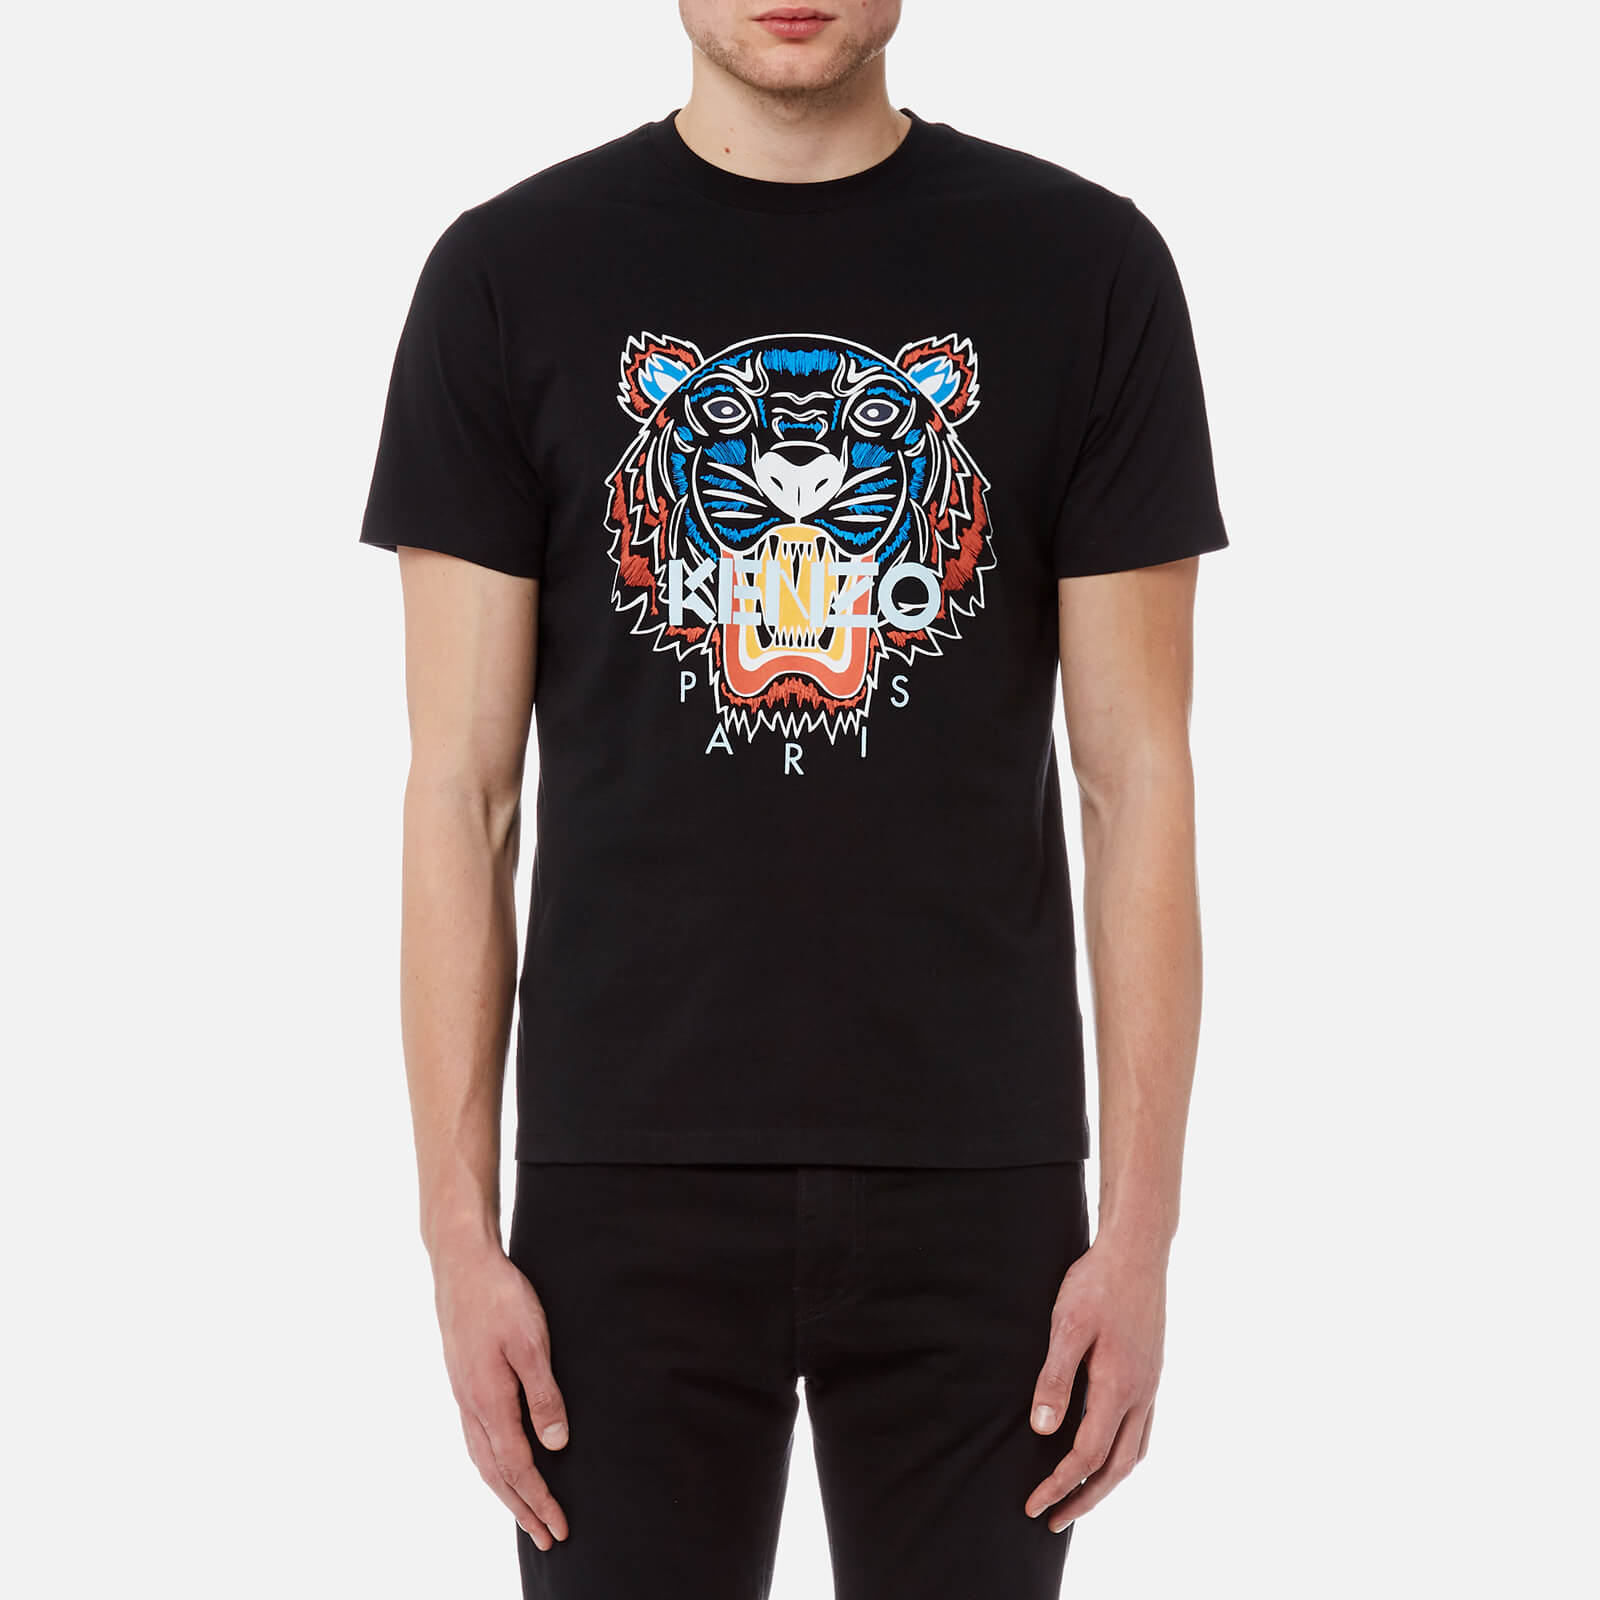 71006c6c87cd KENZO Men s Actua Tiger T-Shirt - Black - Free UK Delivery over £50